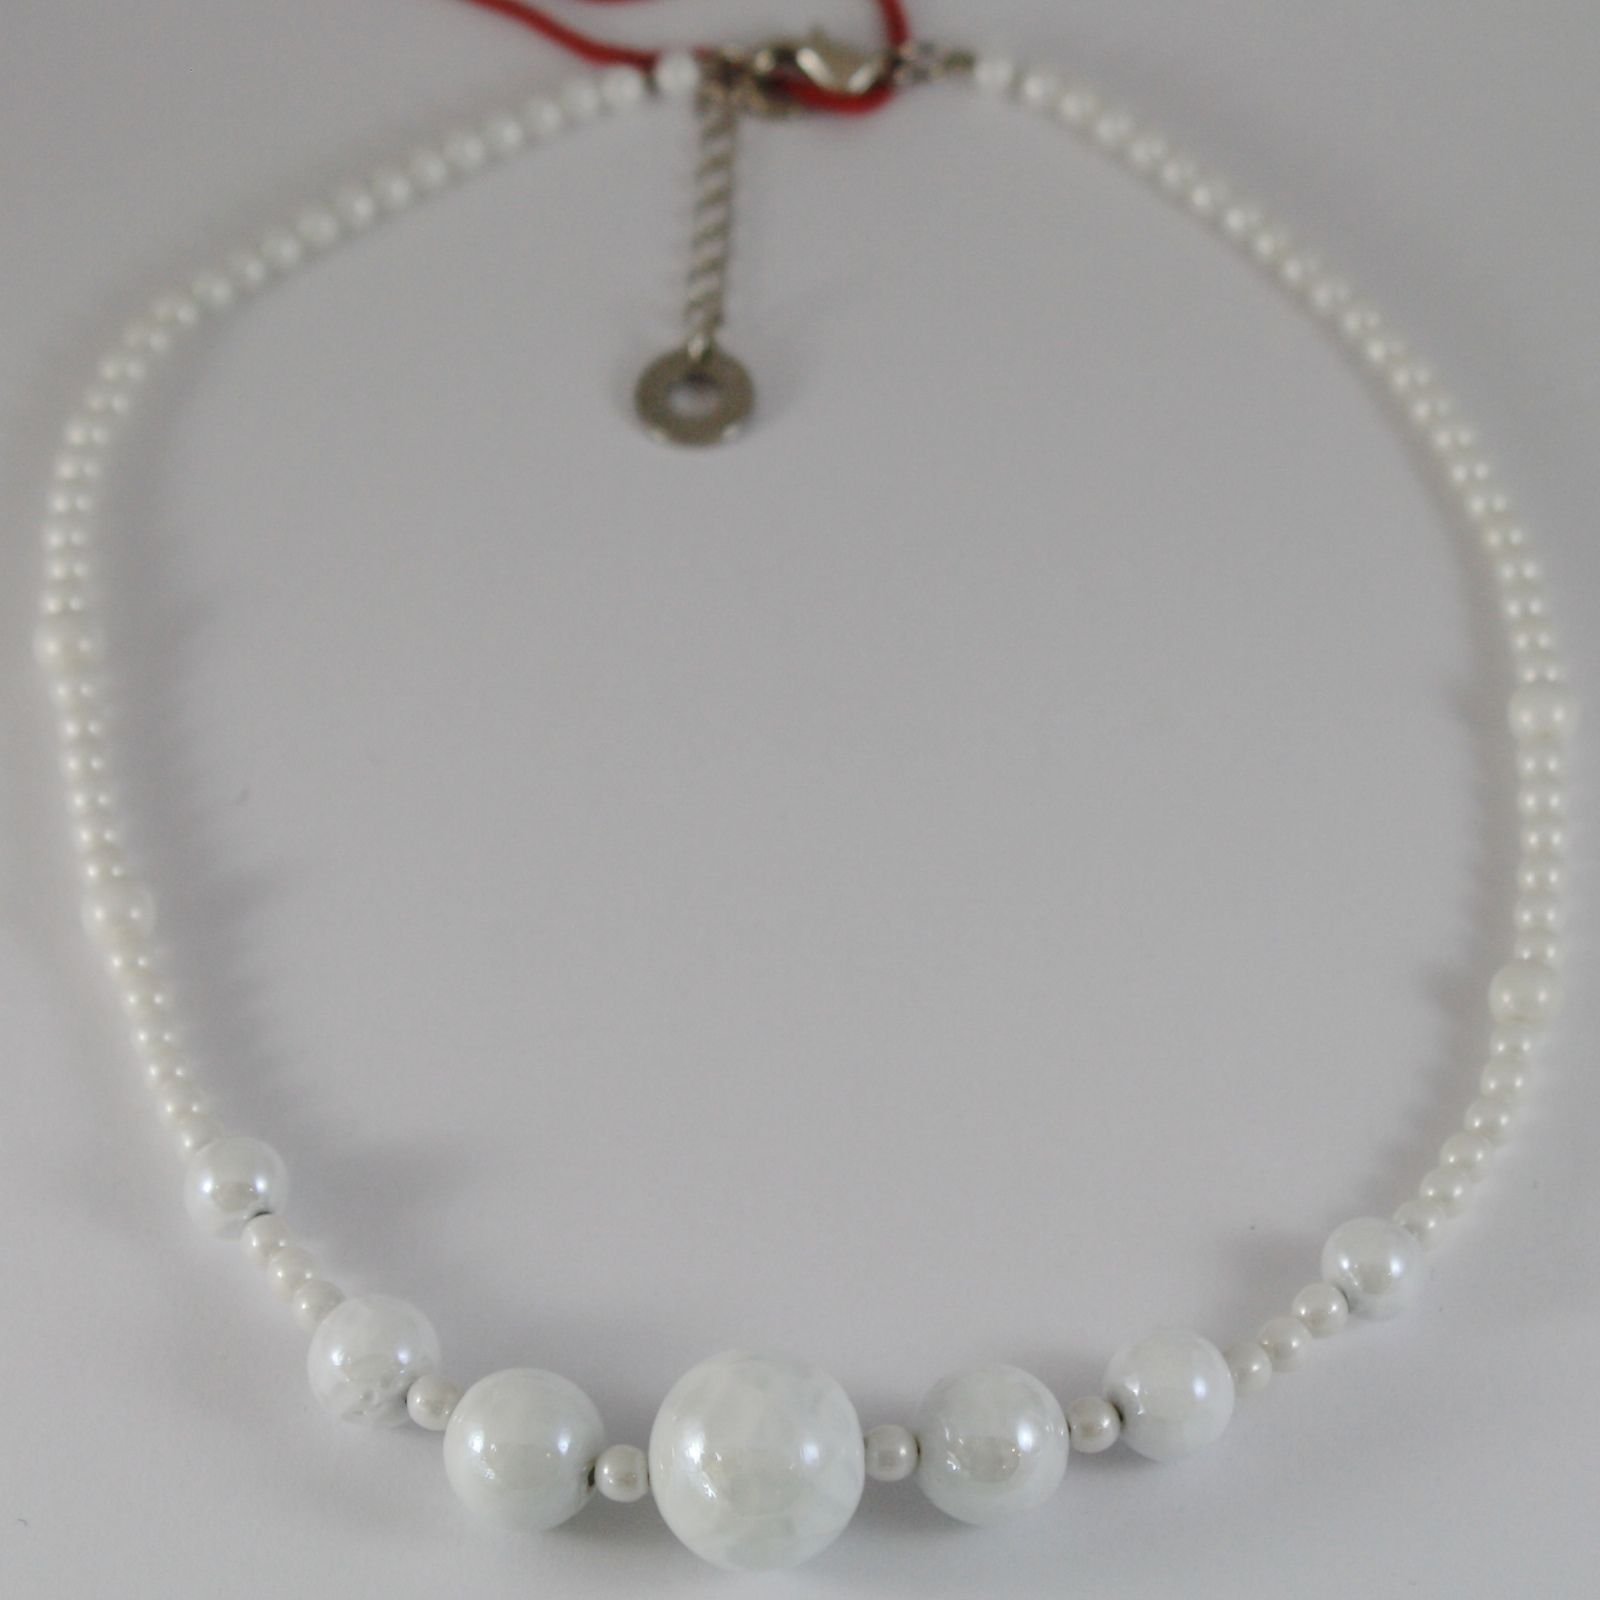 ANTICA MURRINA VENEZIA WHITE SPHERE BALLS NECKLACE, 50 CM, 20 INCHES